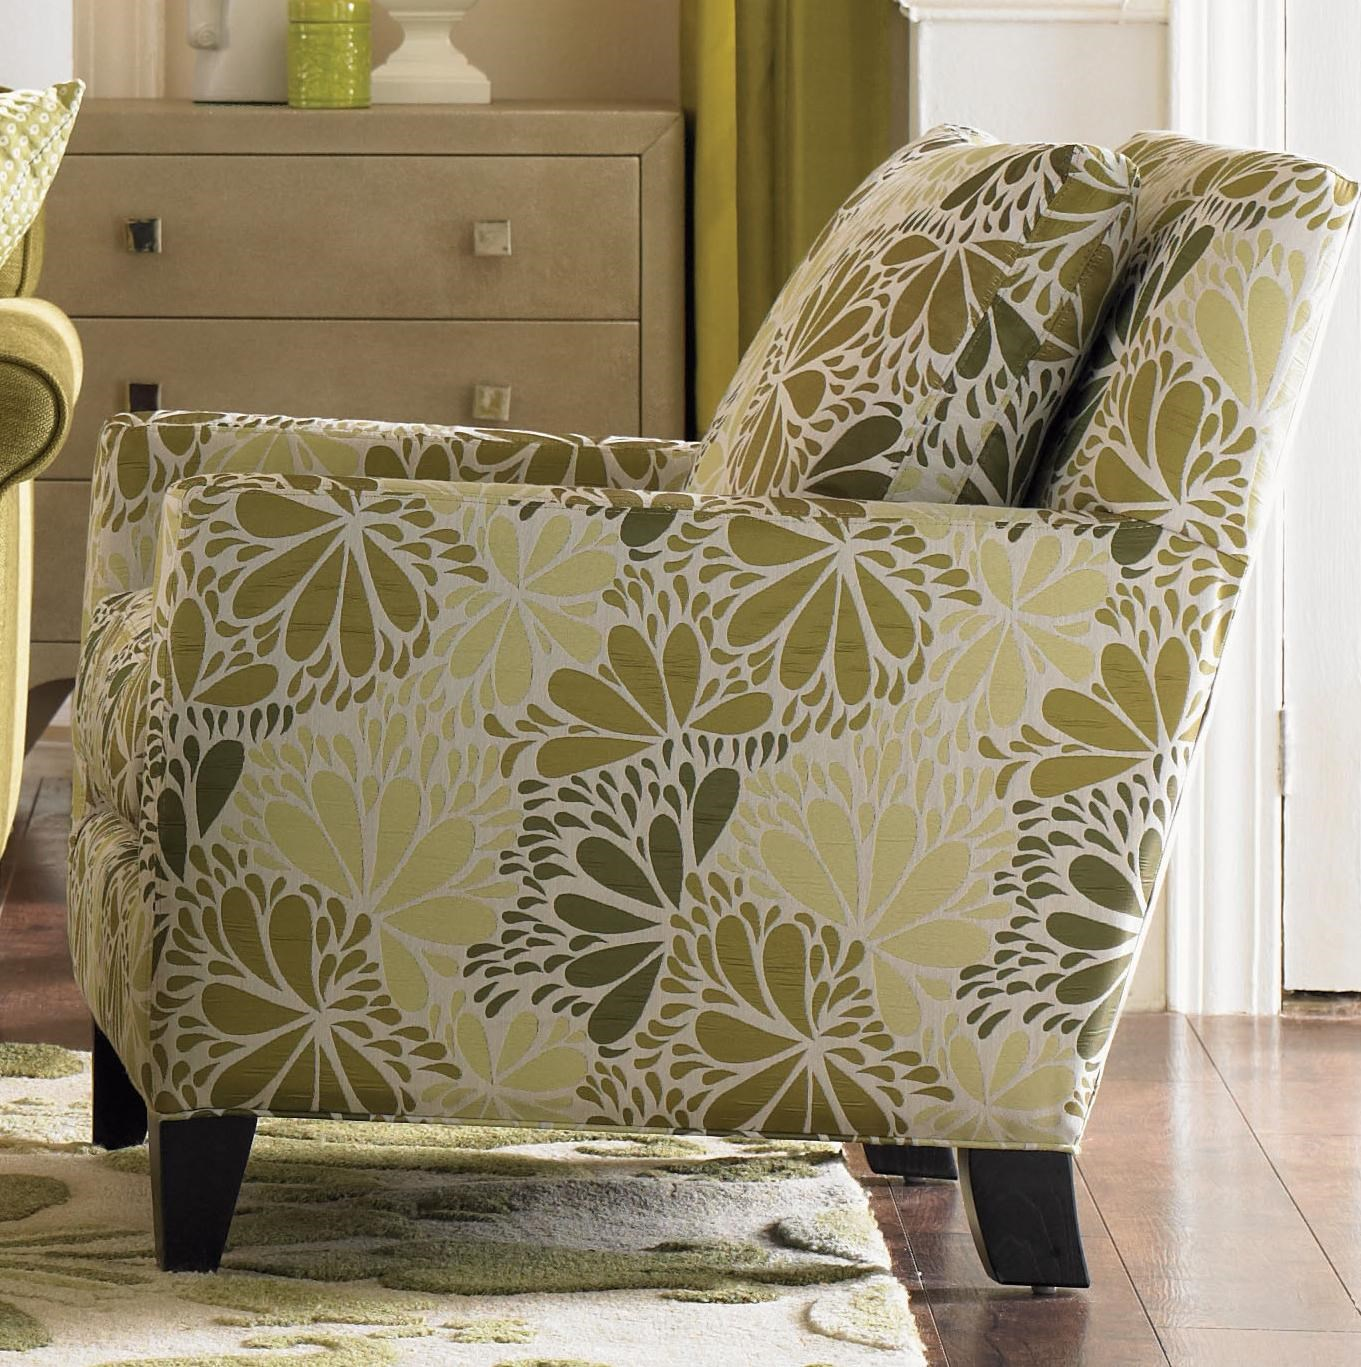 Accent Arm Chairs Selma Upholstered Accent Arm Chair By Jonathan Louis At Rooms And Rest